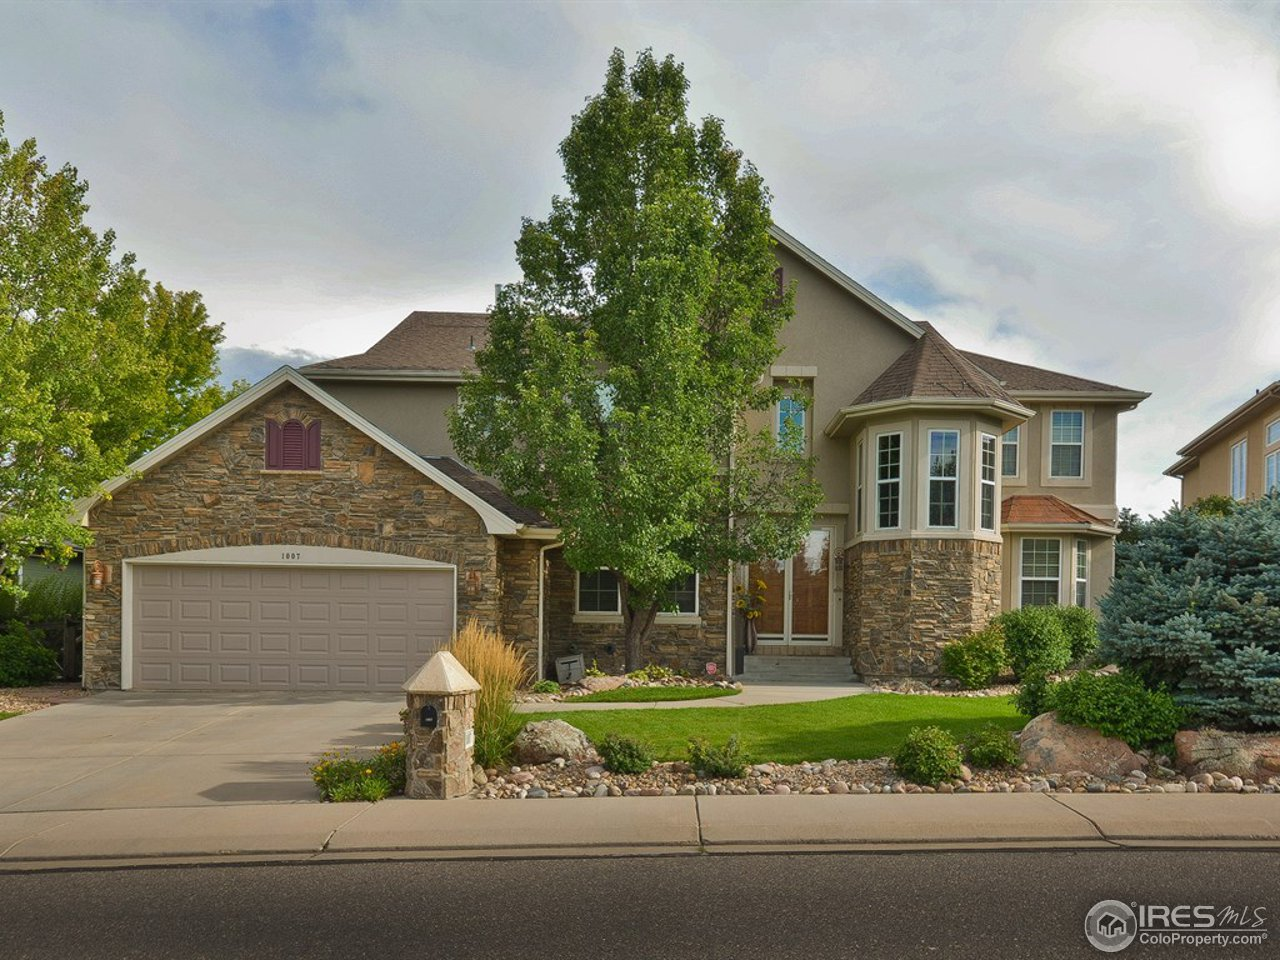 1007 Wyndemere Cir, Longmont, CO 80504